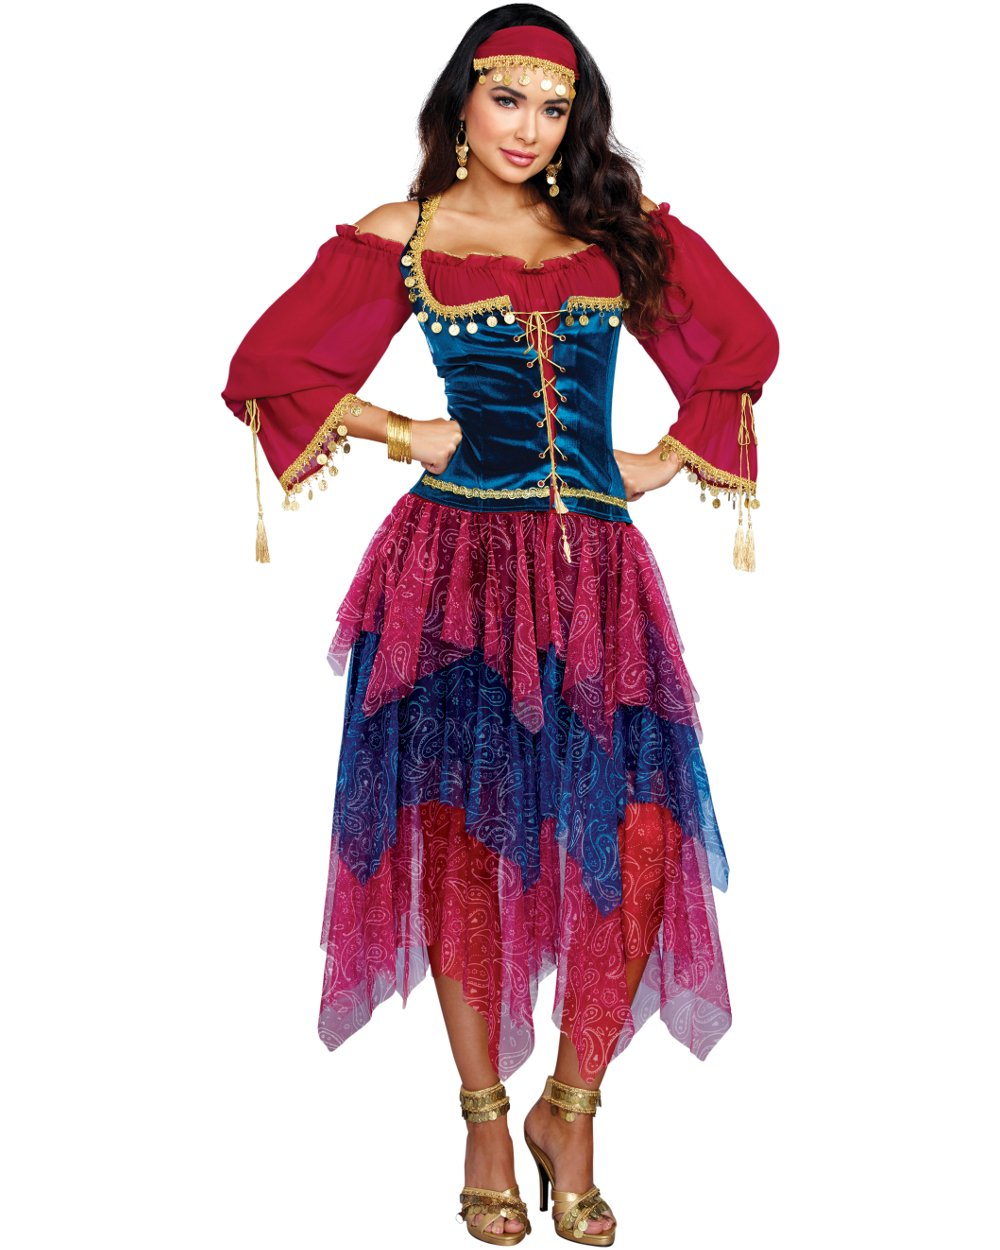 Gypsy Style Belly Dancer, Costuming And Gift Ideas